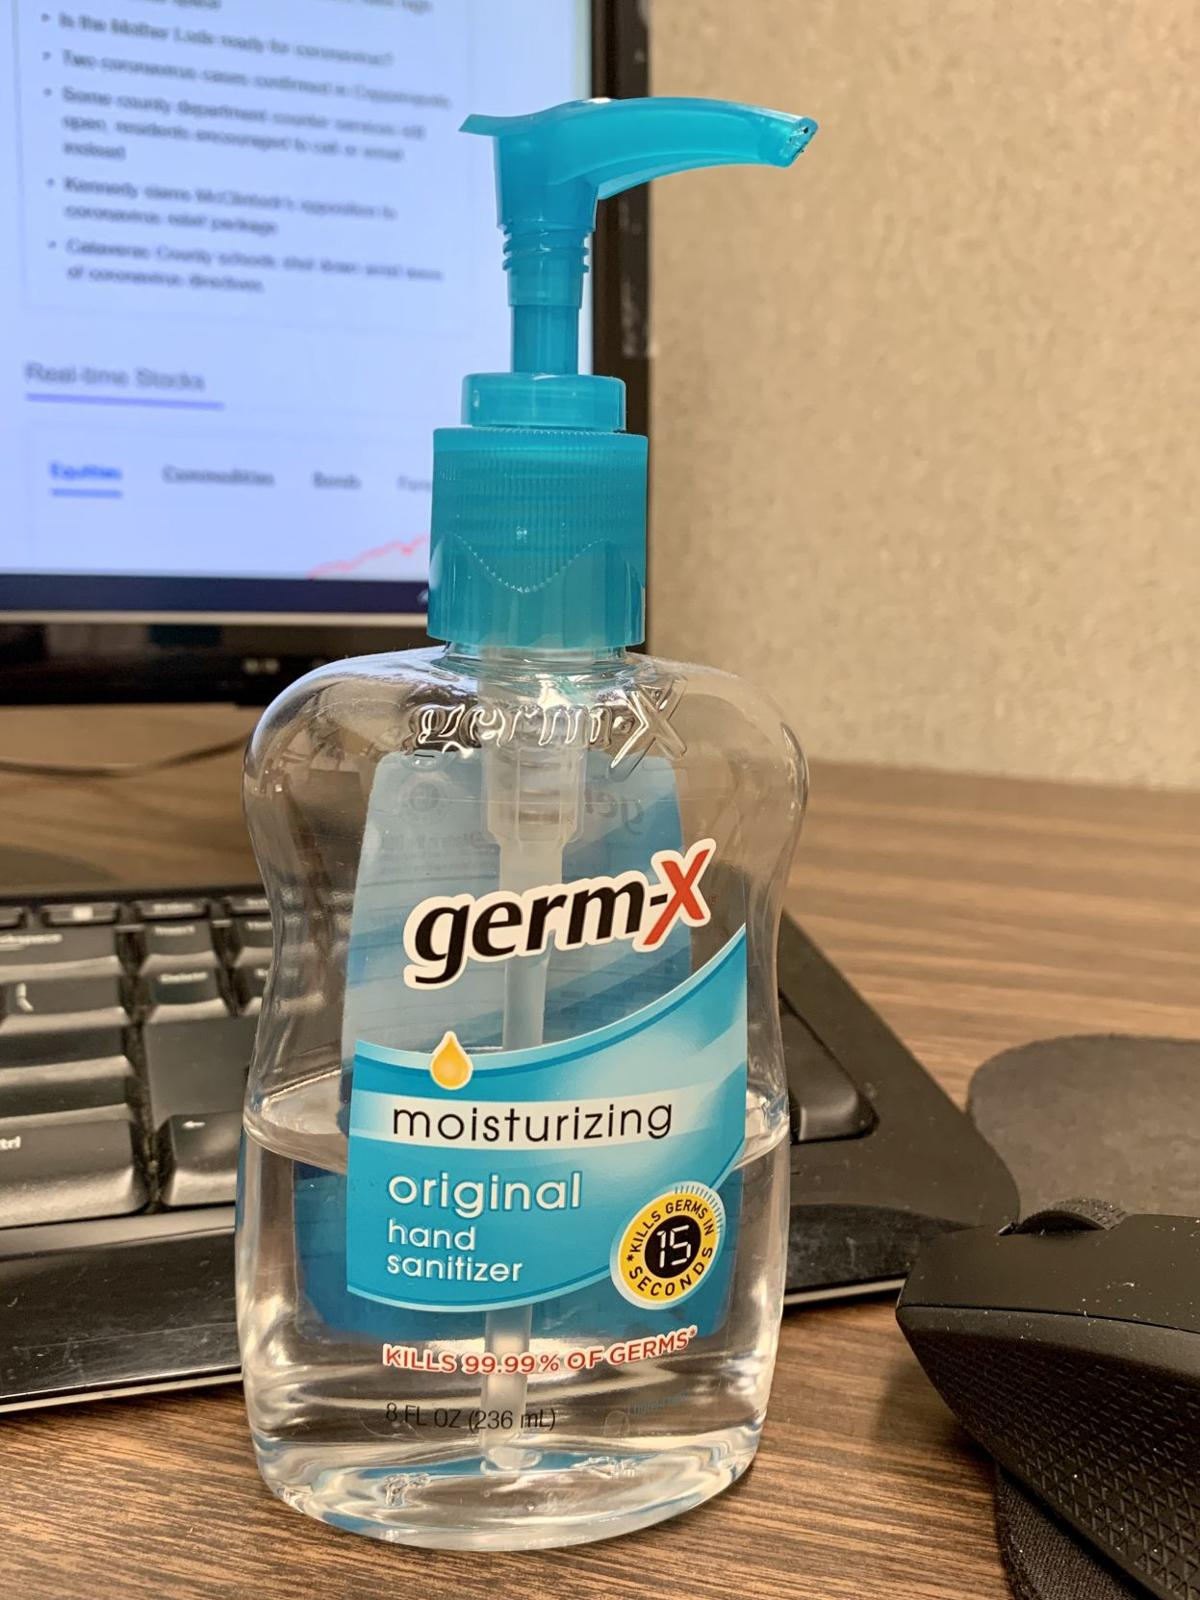 Who stole the hand sanitizer? I'm on the case